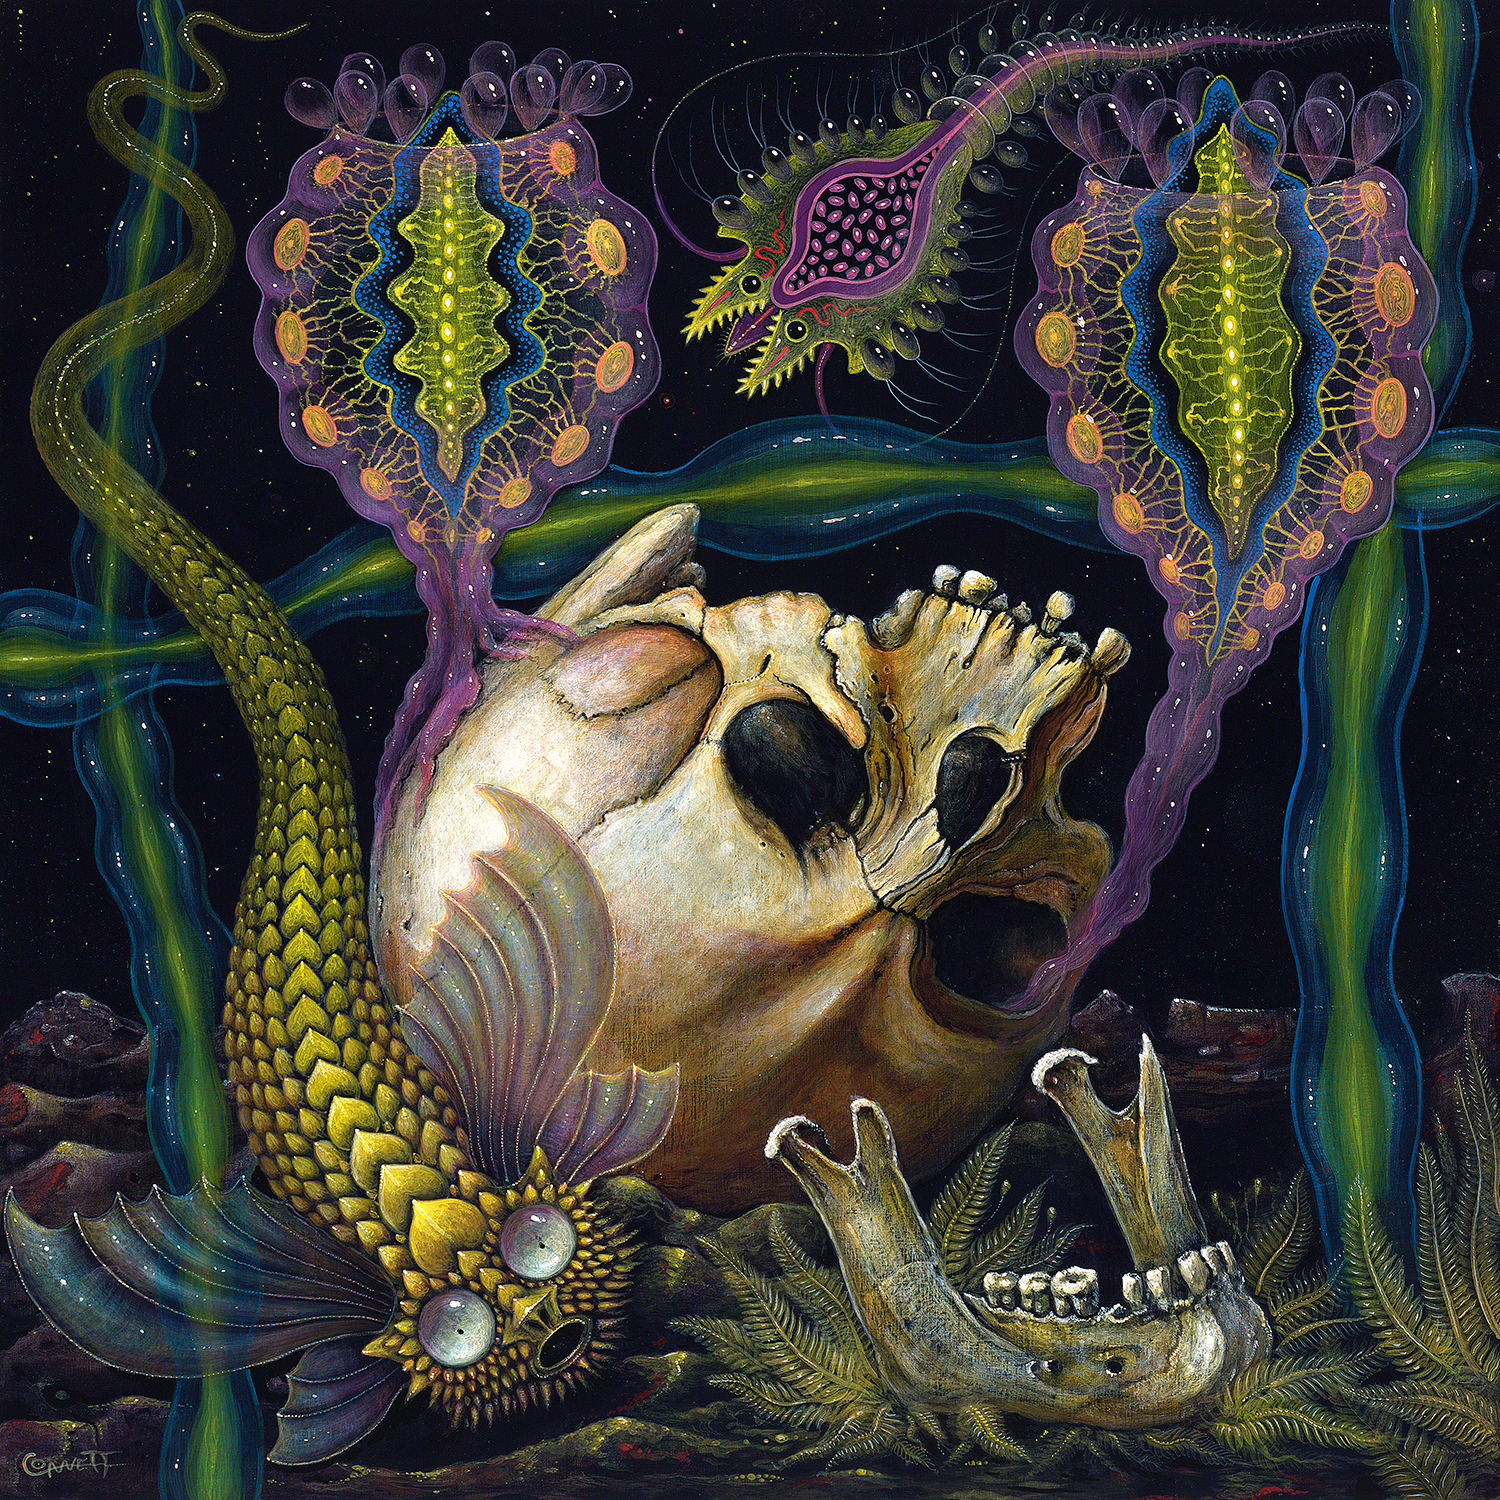 Upside down skull with detached jaw bone surrounded by bacteria-shaped aquatic beings